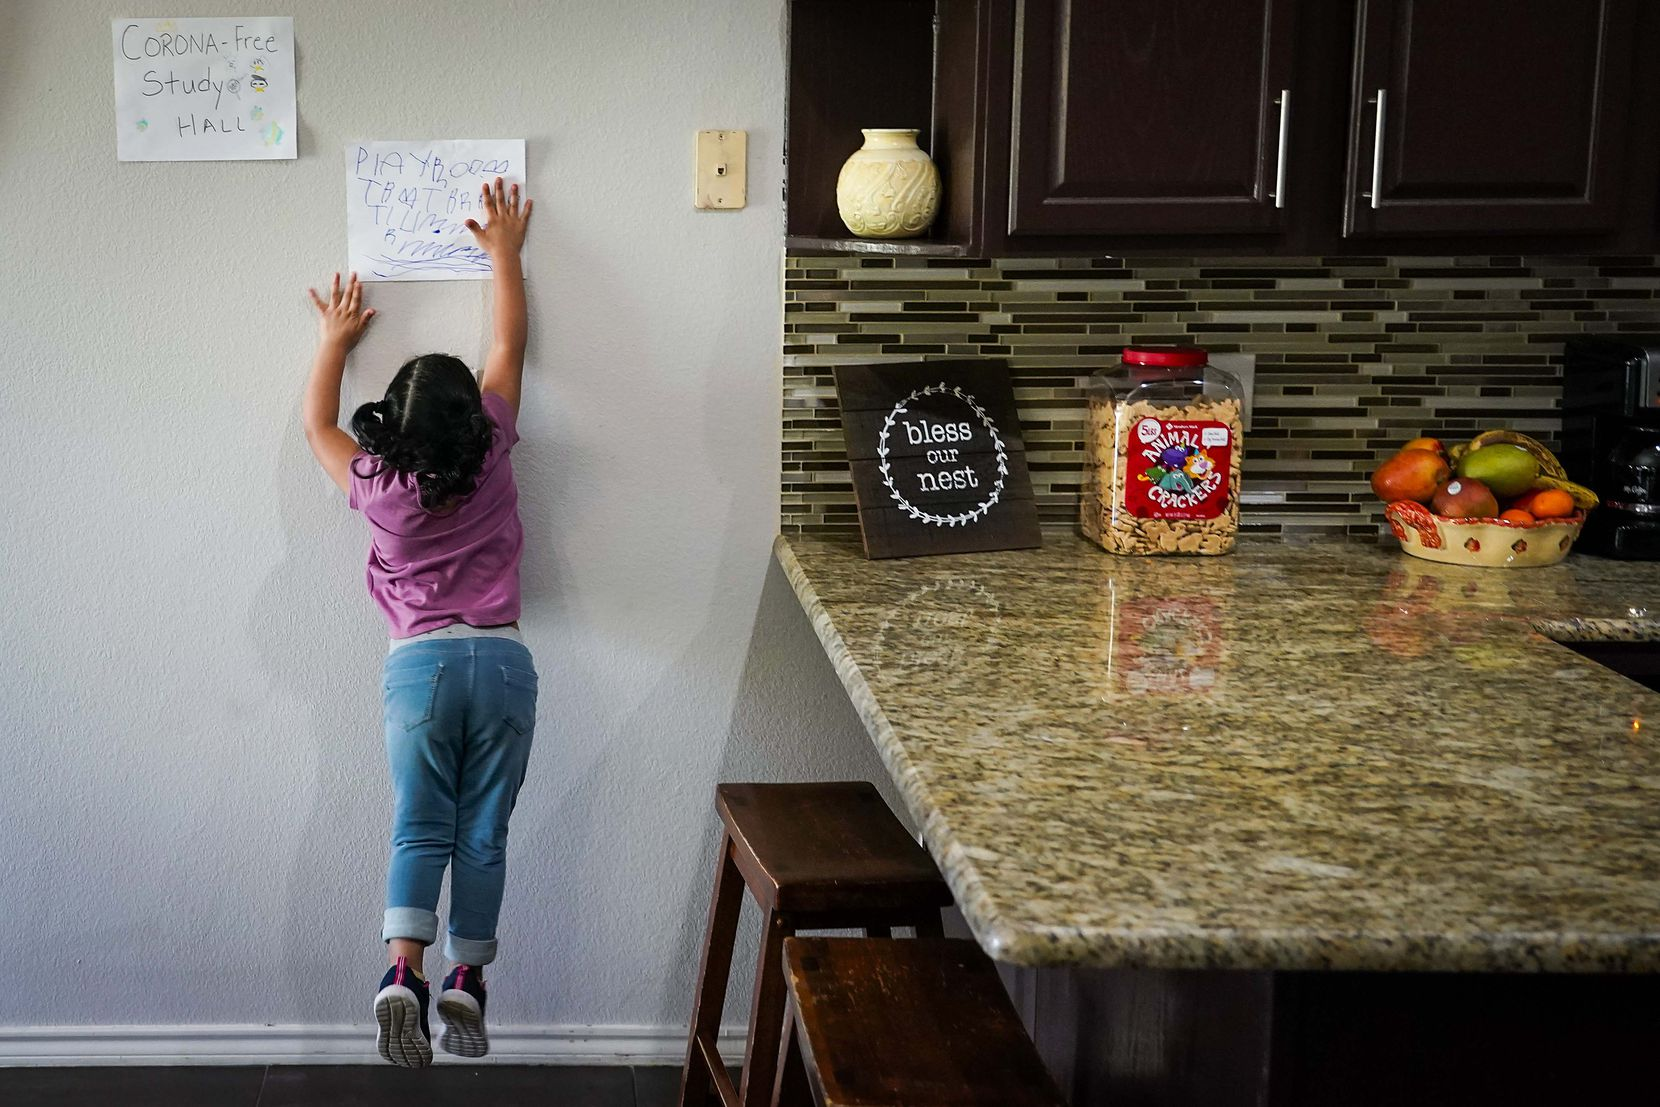 Kamila Cabrera, 4, leaps to touch a sign in the familyÕs kitchen designating it a Òplay roomÓ in addition to an adjacent sign designating it a Òcorona-free study hallÓ on Wednesday, March 18, 2020, in Grand Prairie.